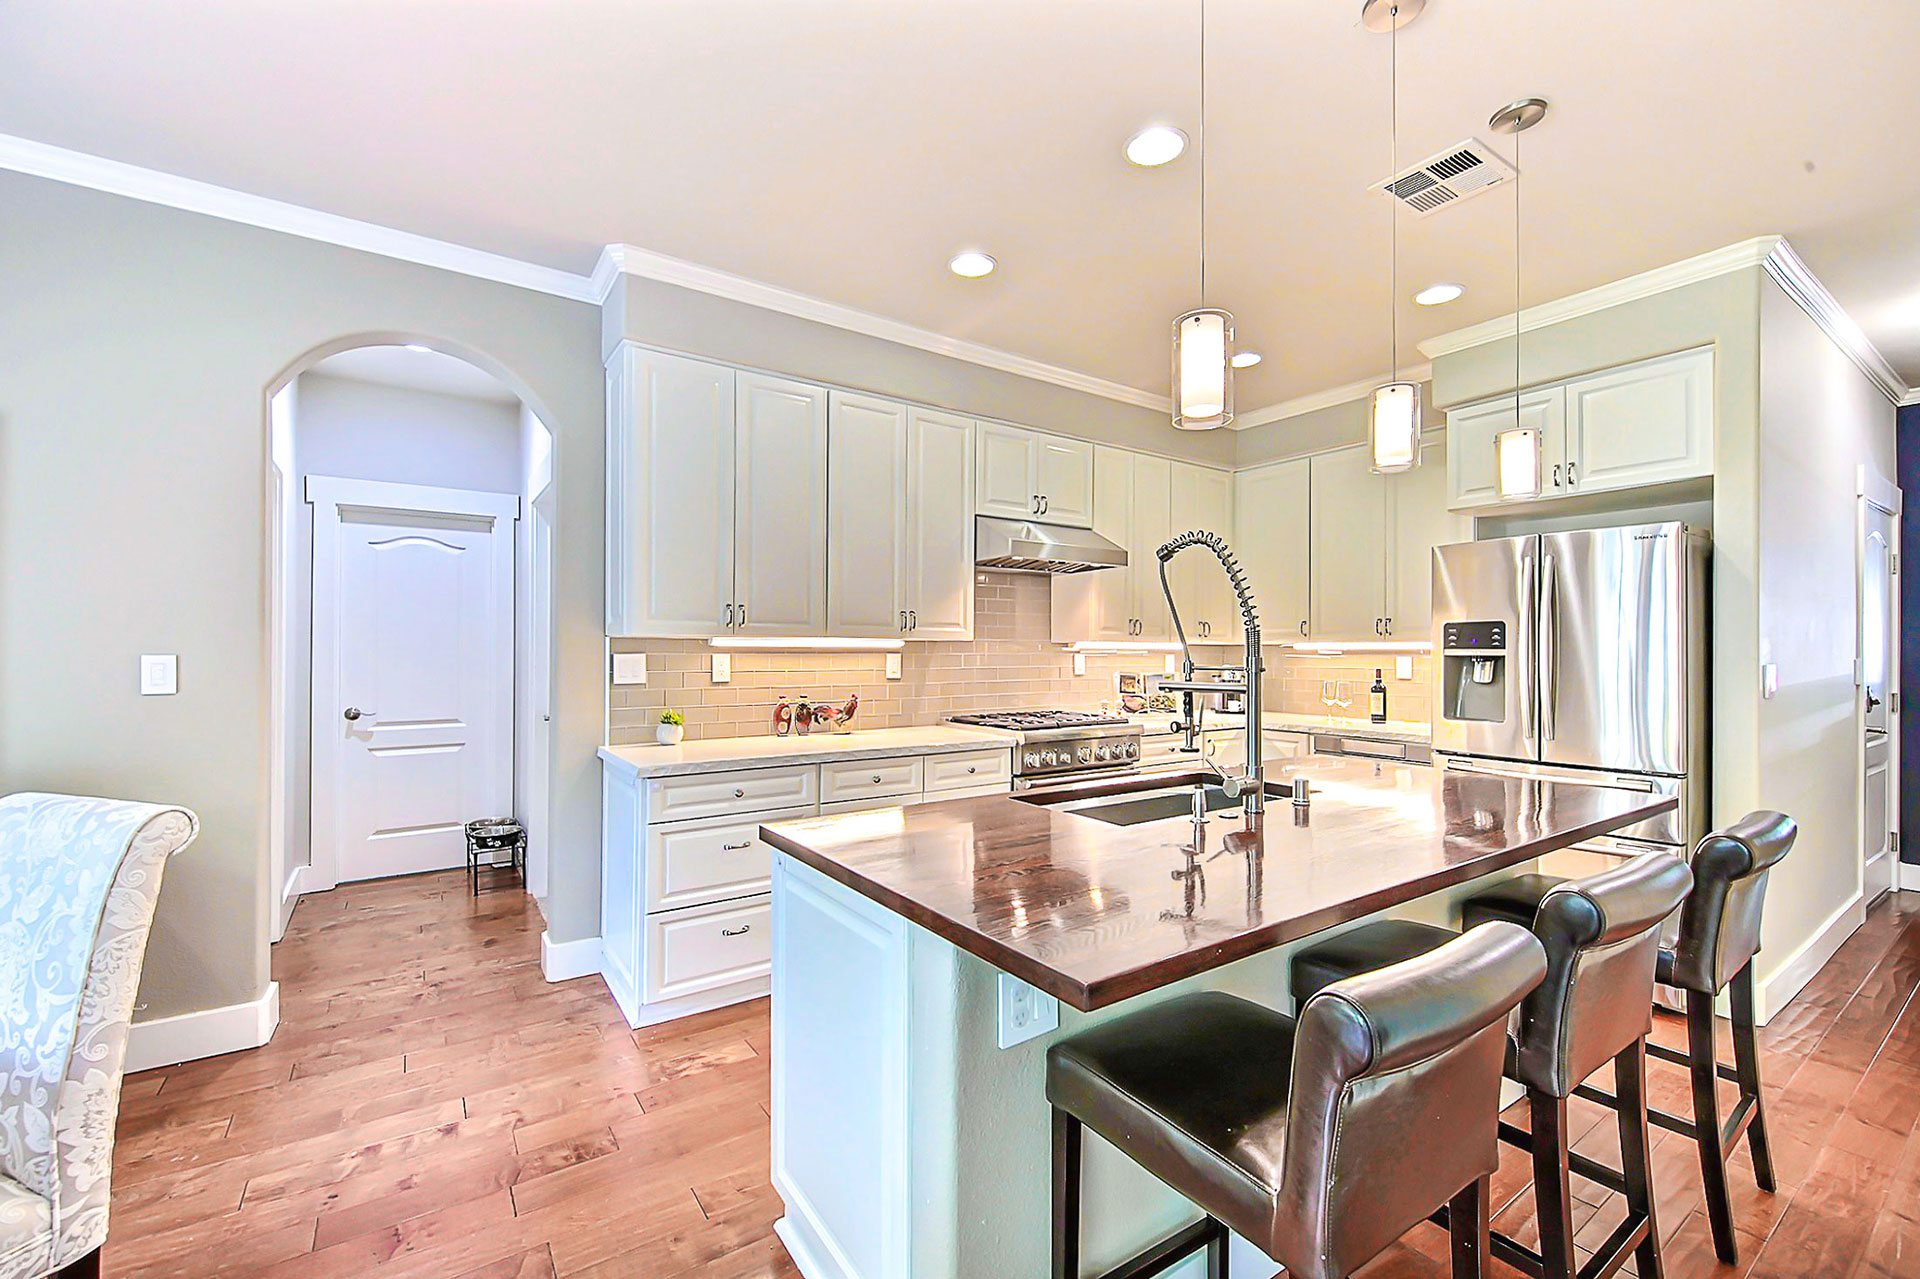 Original kitchen before being remodeled into a contemporary space with traditional design